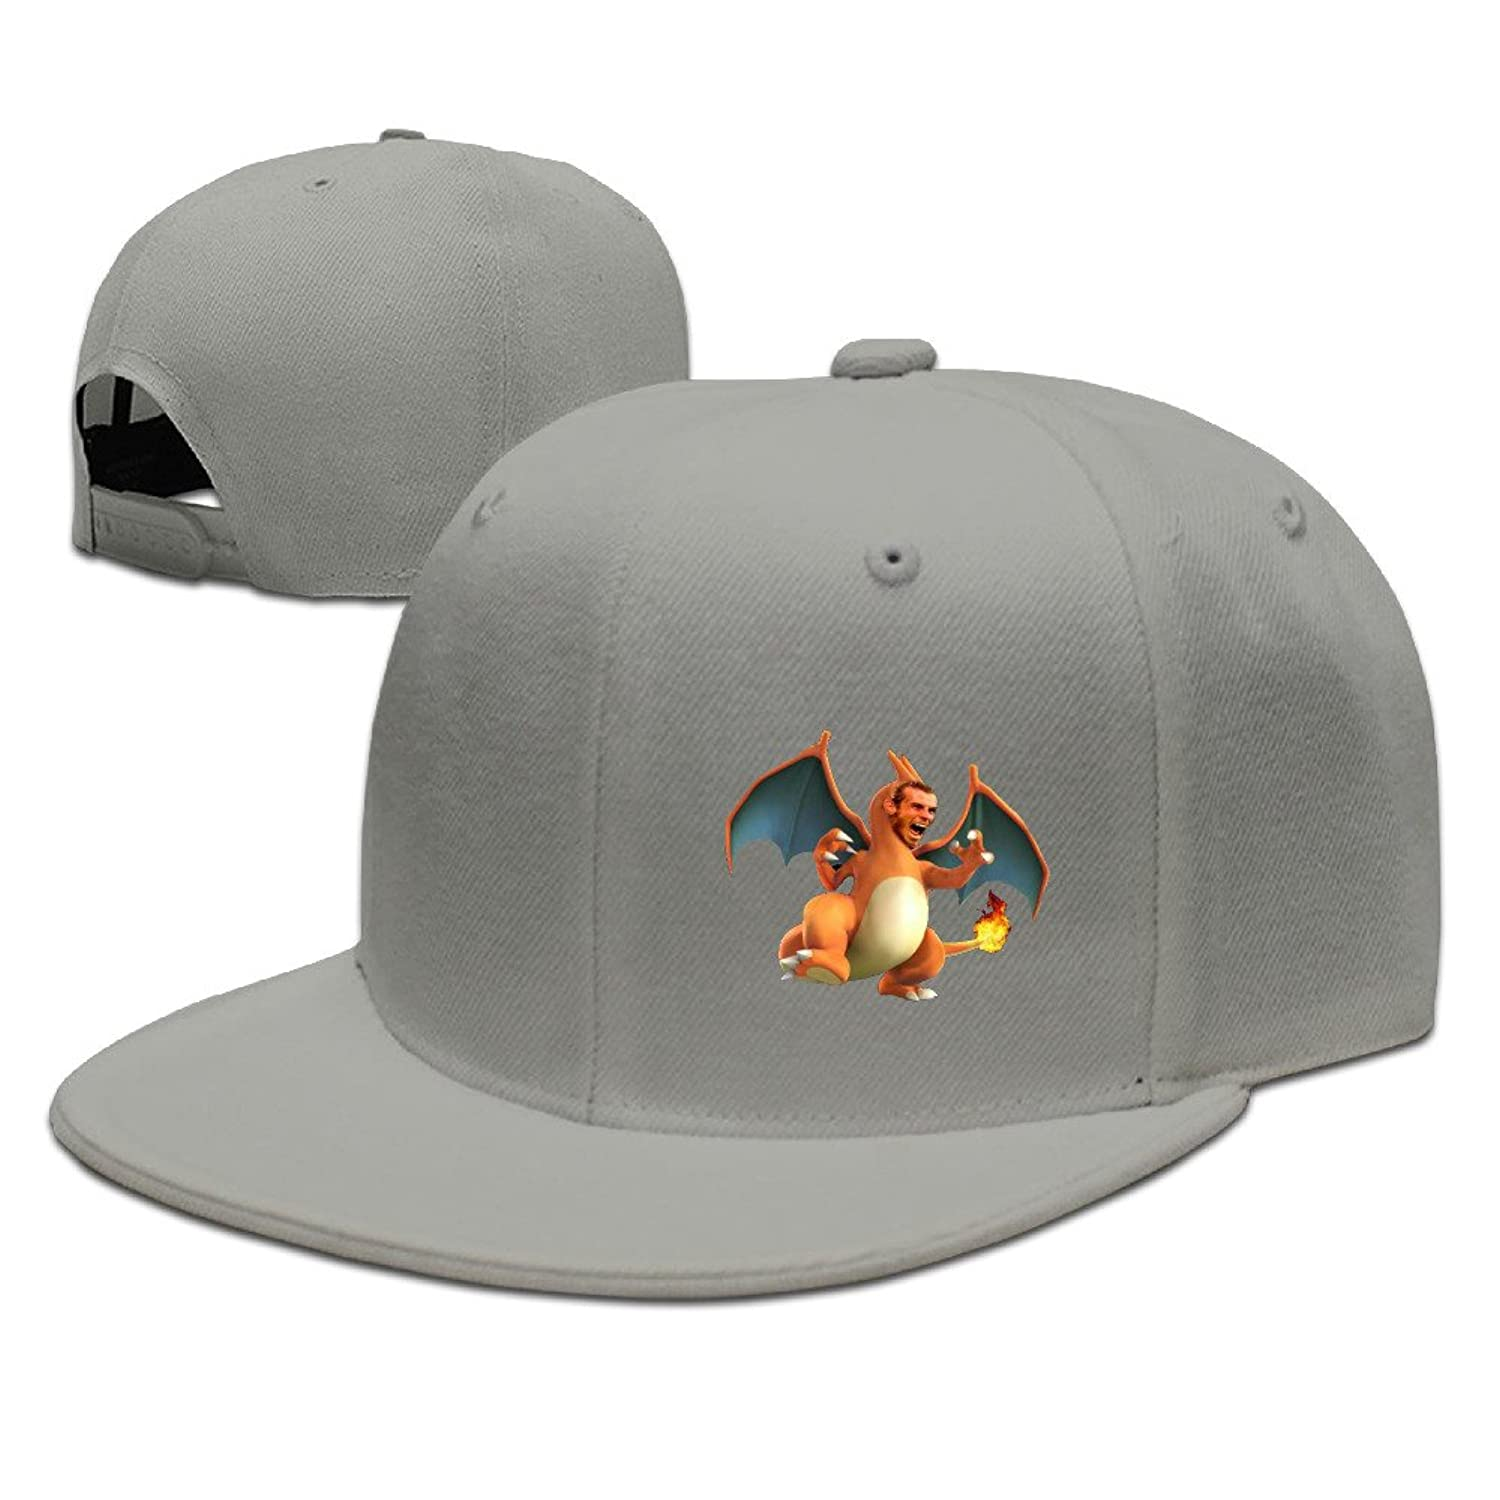 Gareth Bale Charizardd Fitted Normal \r\nLarge Size For Men Cap Women